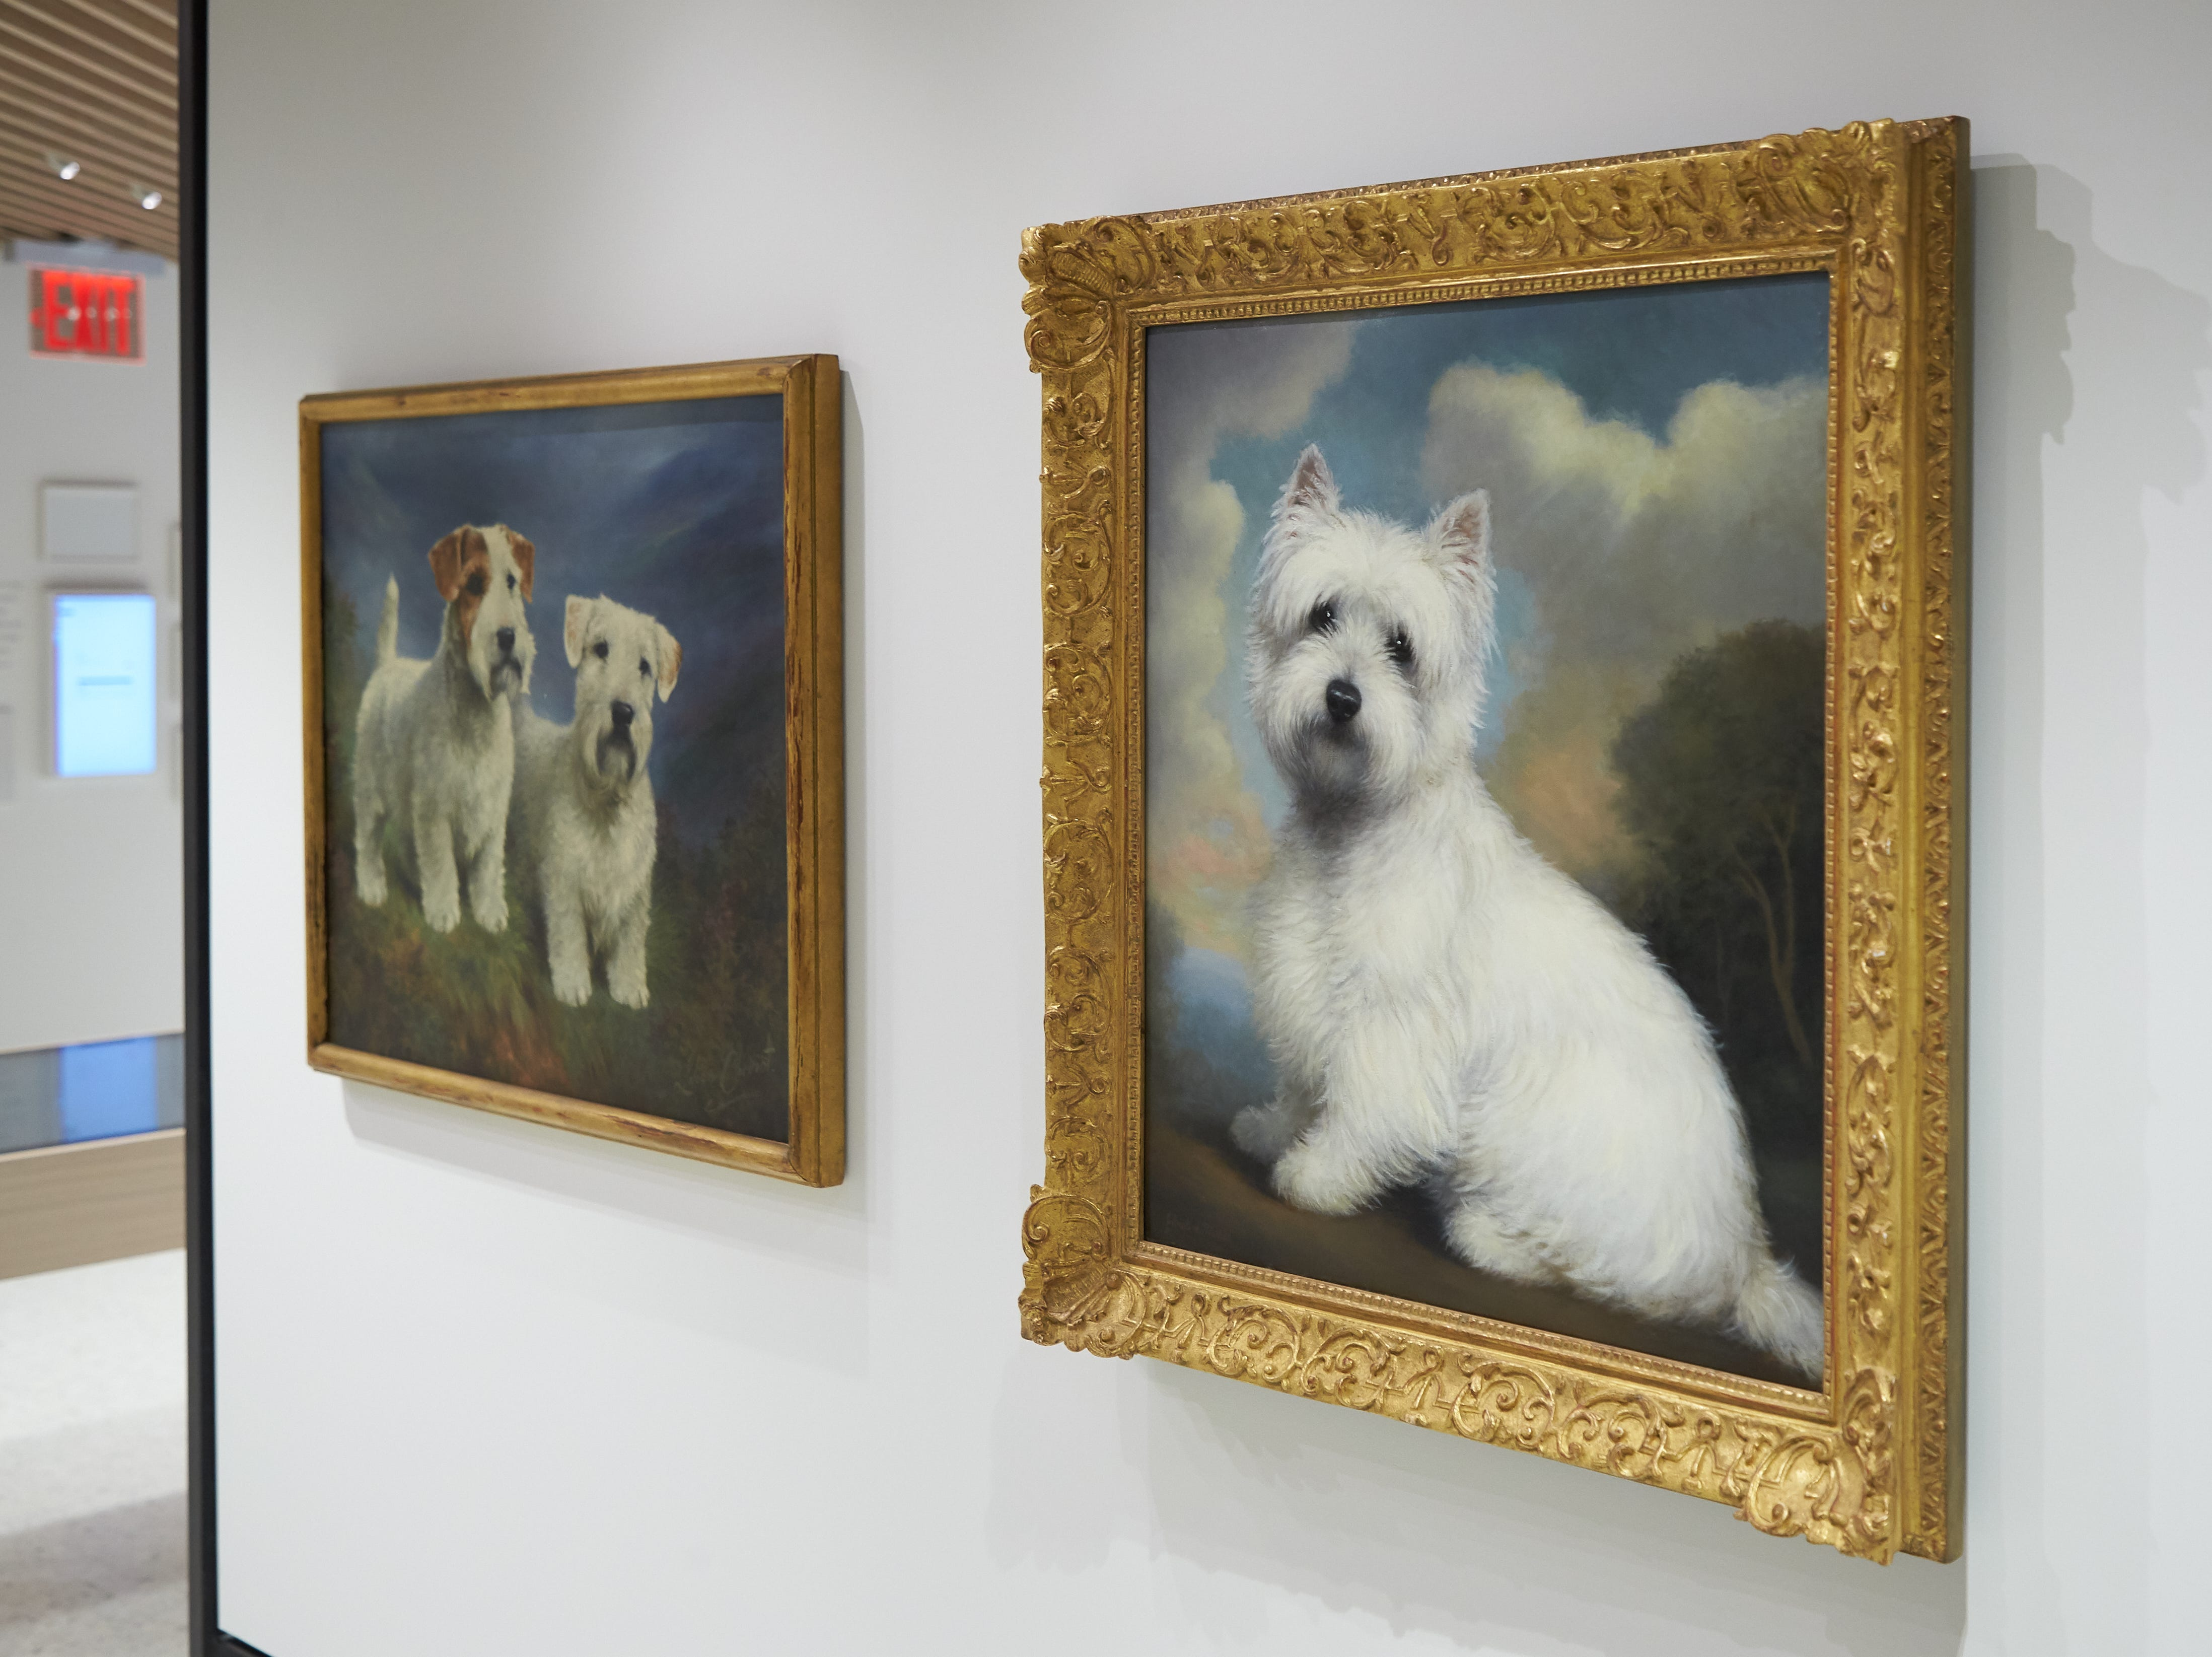 The new Museum of the Dog will house art from artists such as Edwin Landseer, Maud Earl, Arthur Wardle and many more.